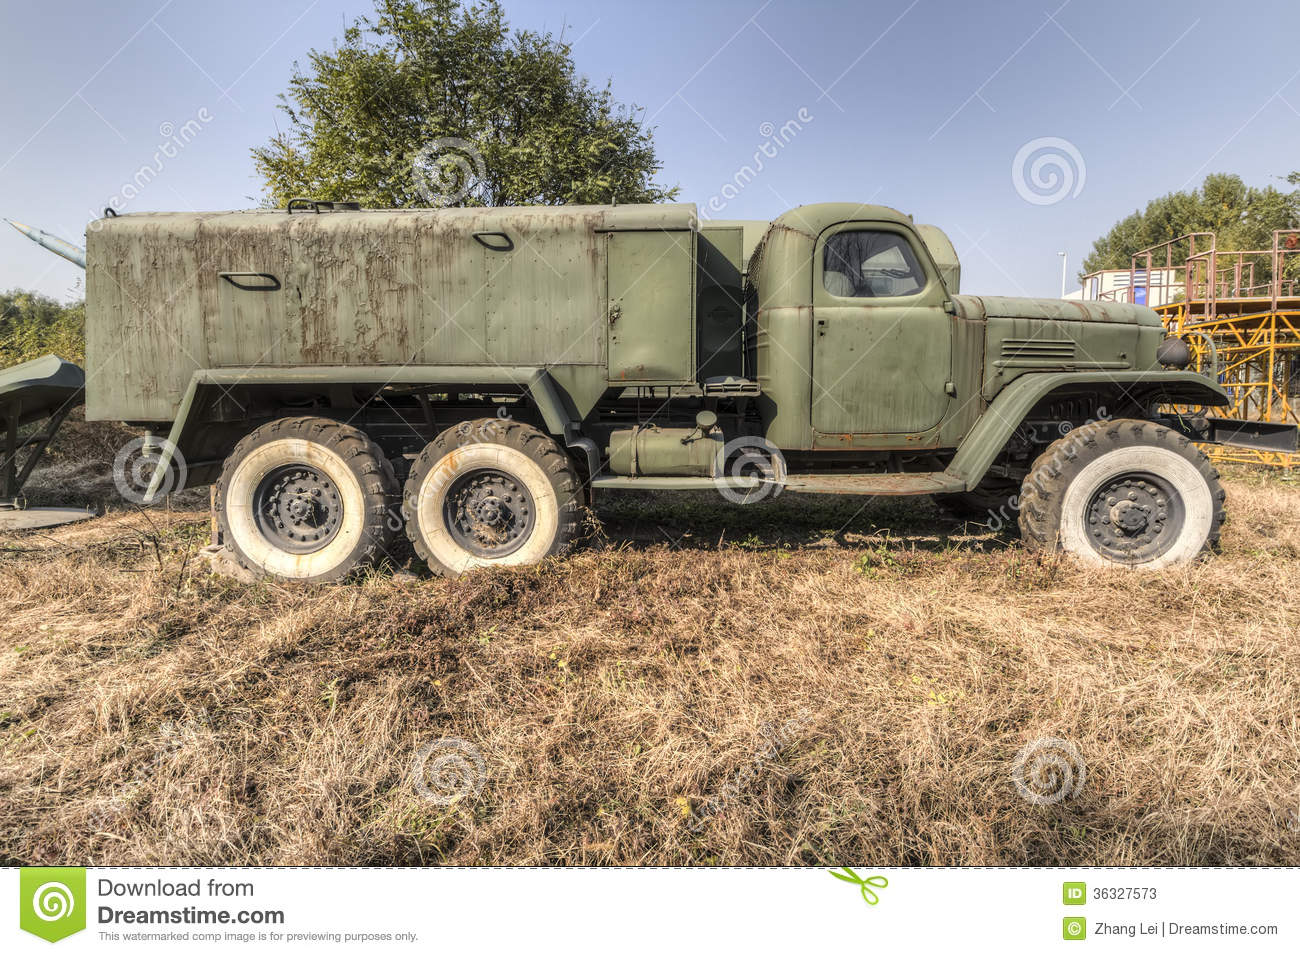 Old military truck stock image. Image of arms, white - 36327573